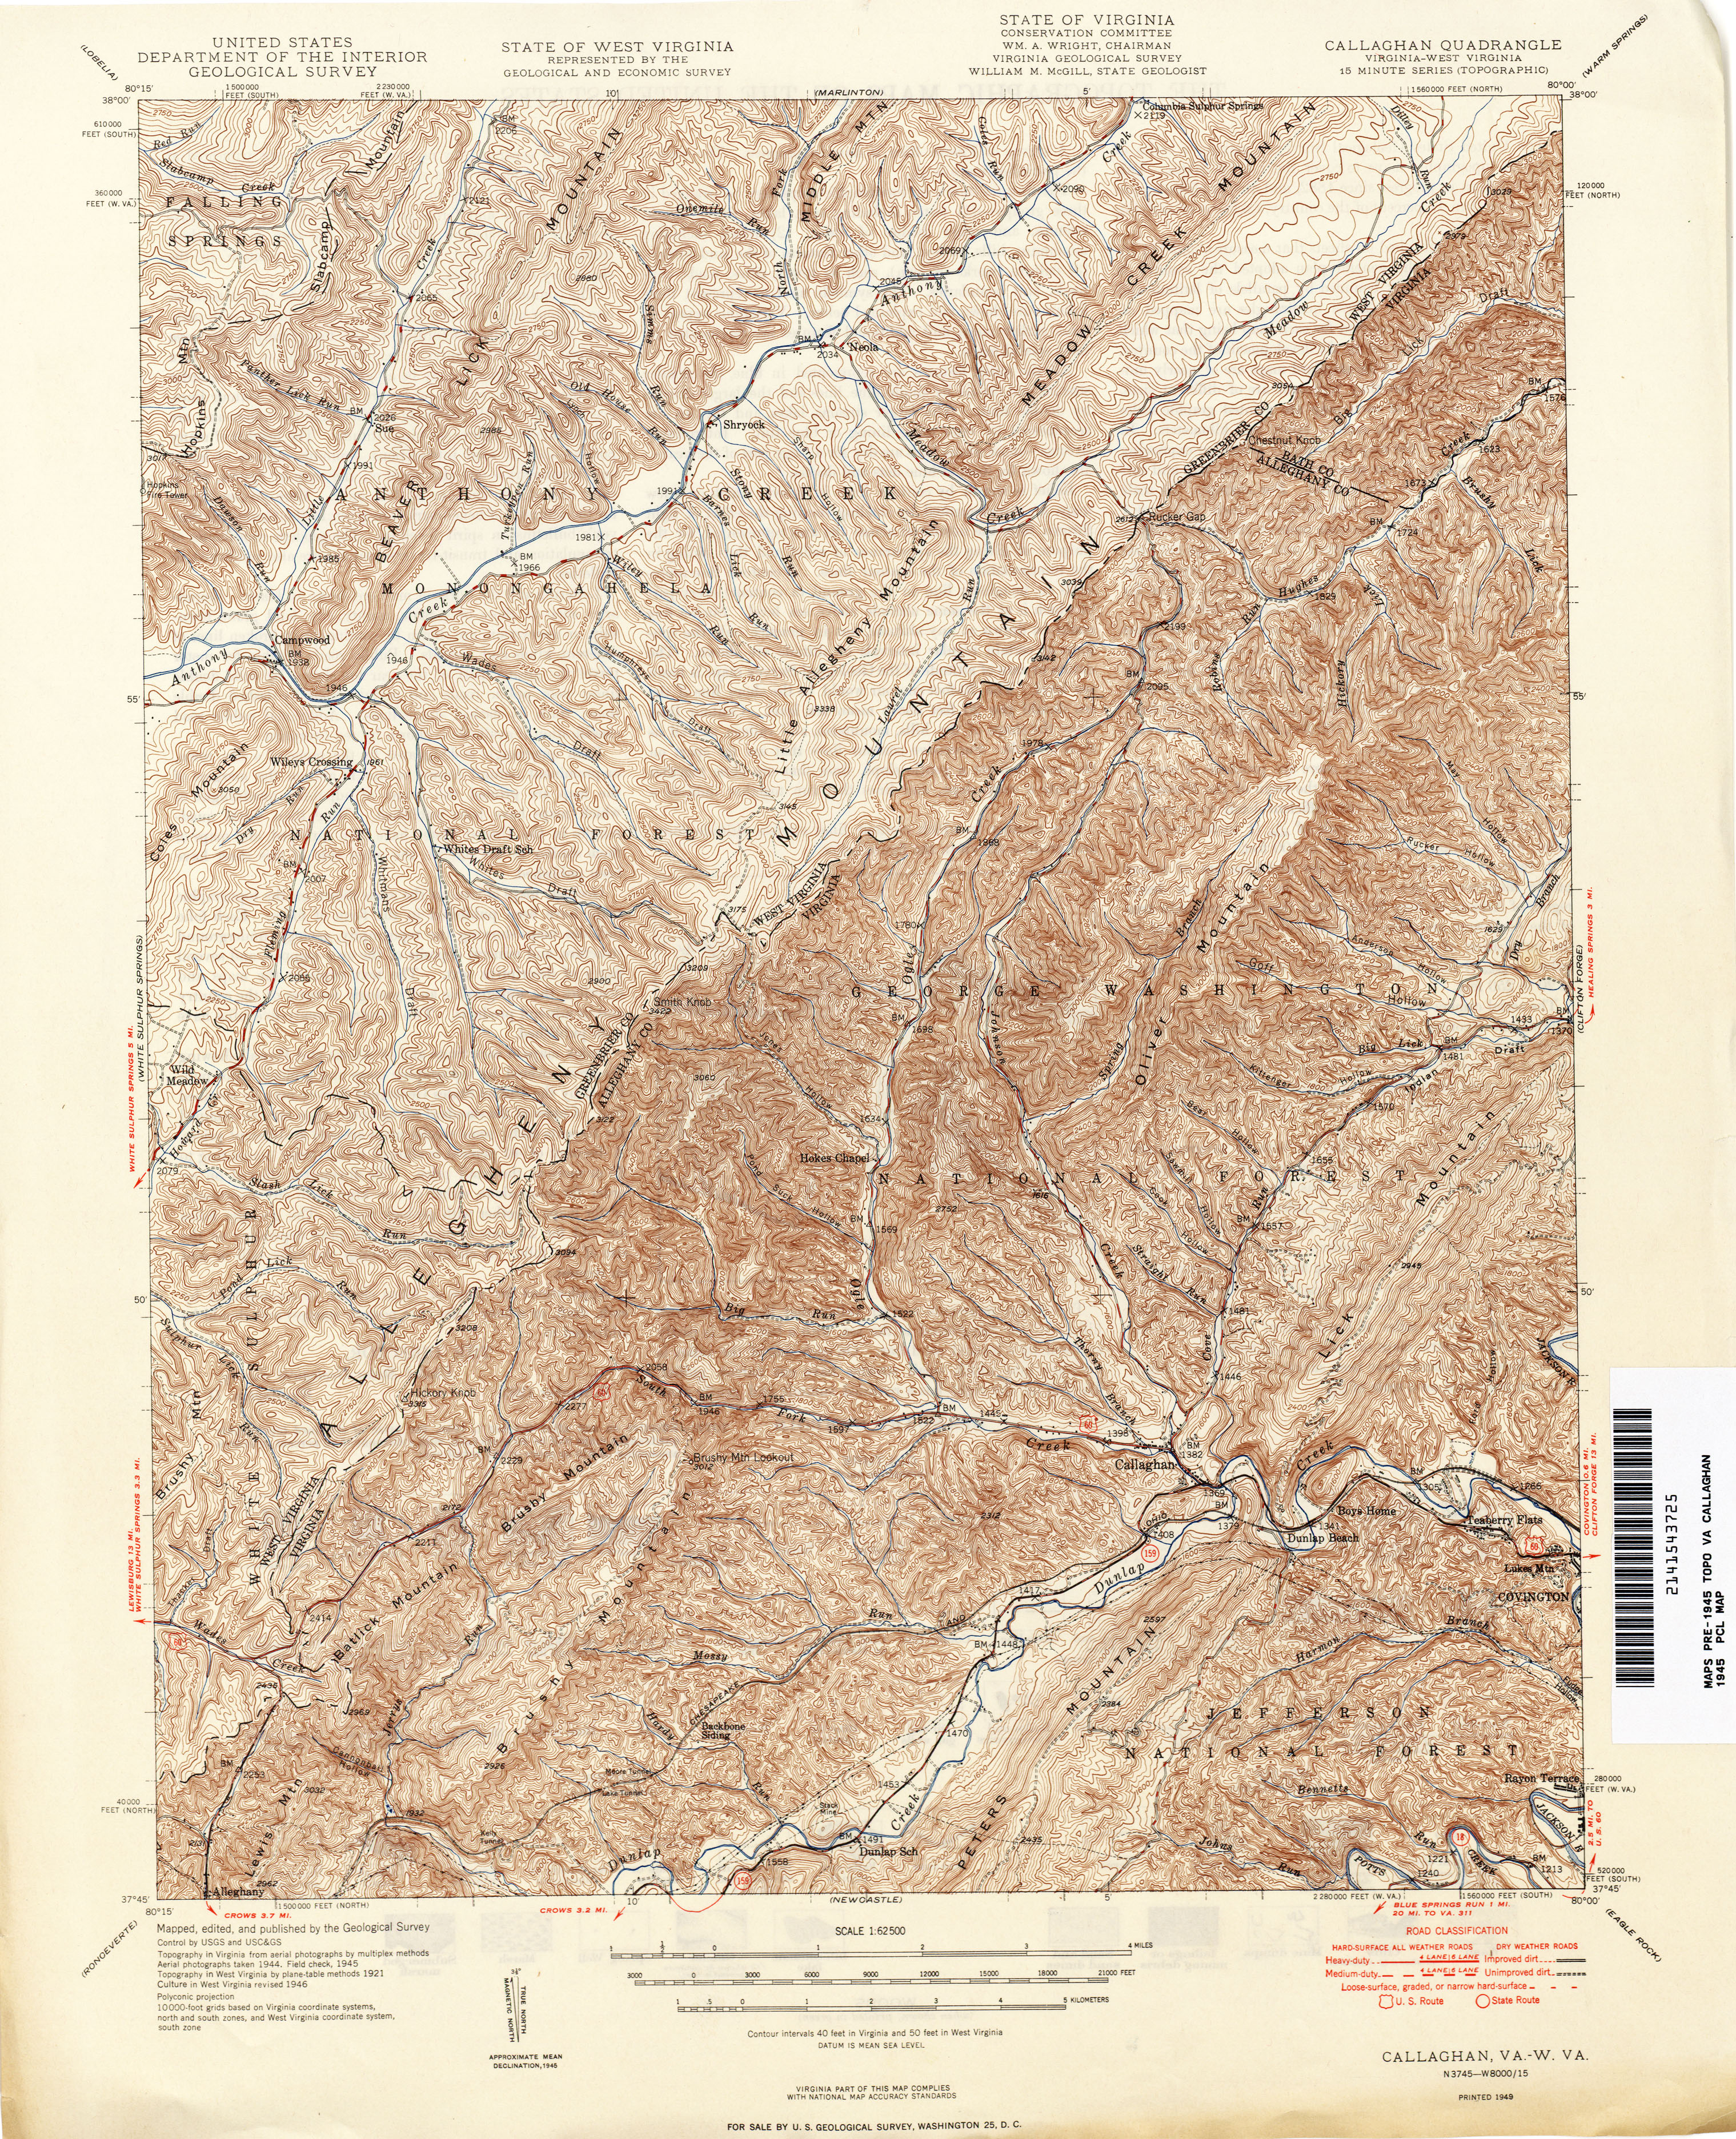 West Virginia Historical Topographic Maps PerryCastañeda Map - West virginia road map